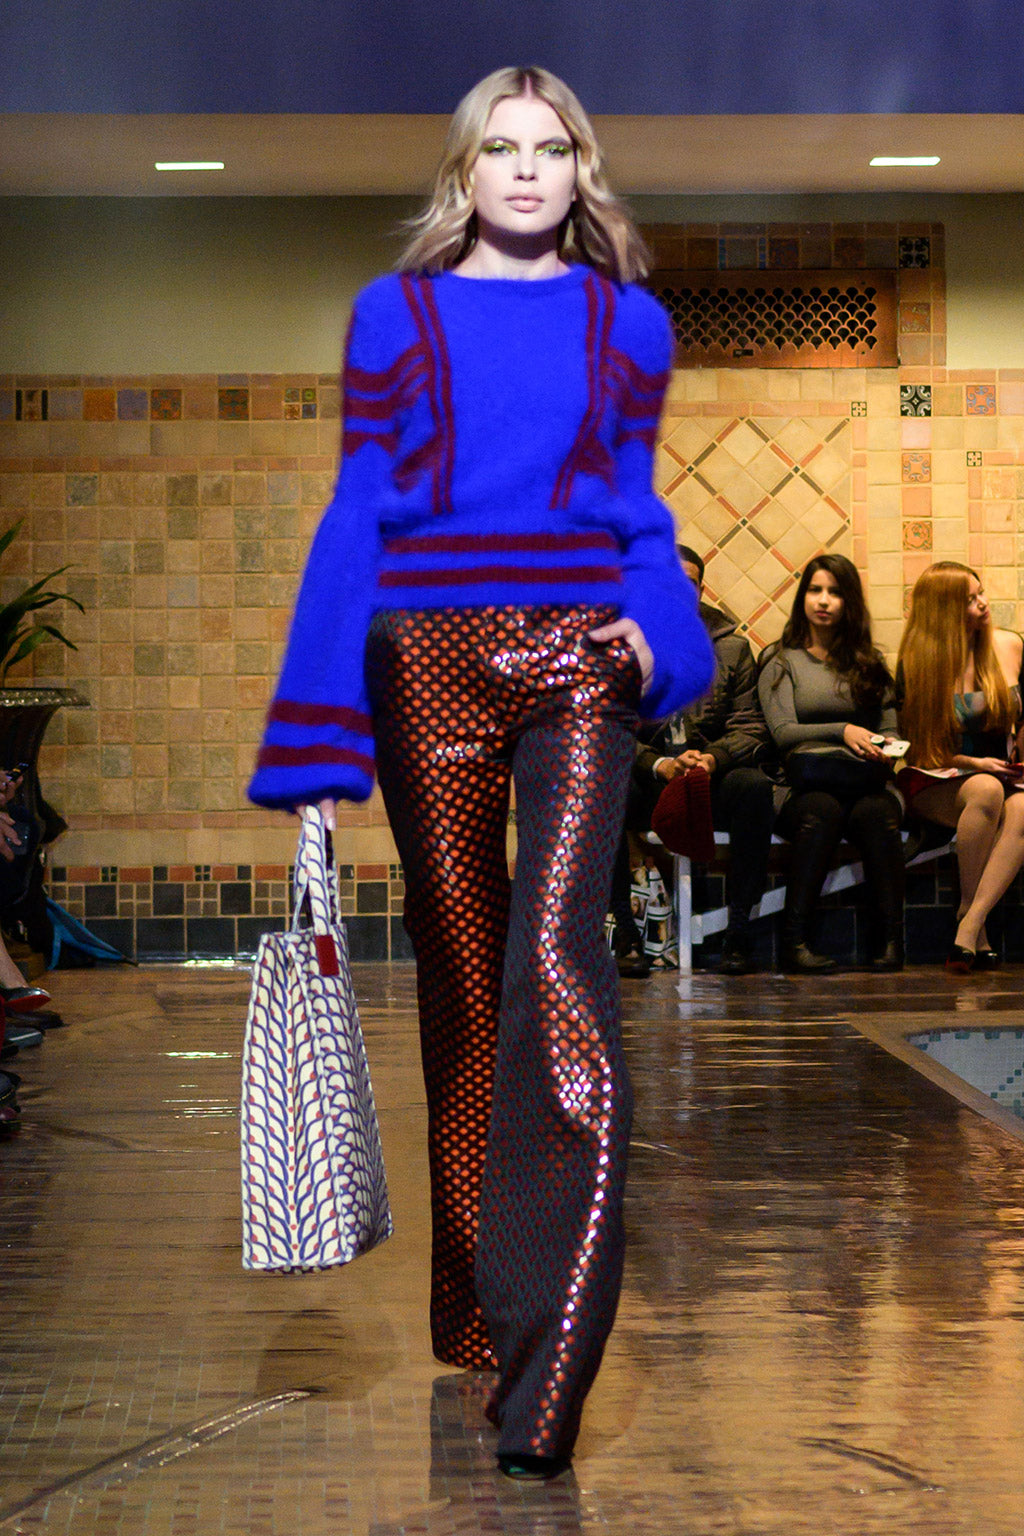 Cynthia Rowley Fall 2019 look 14 featuring a sweater with abstract print and pants with orange and black fish scale print